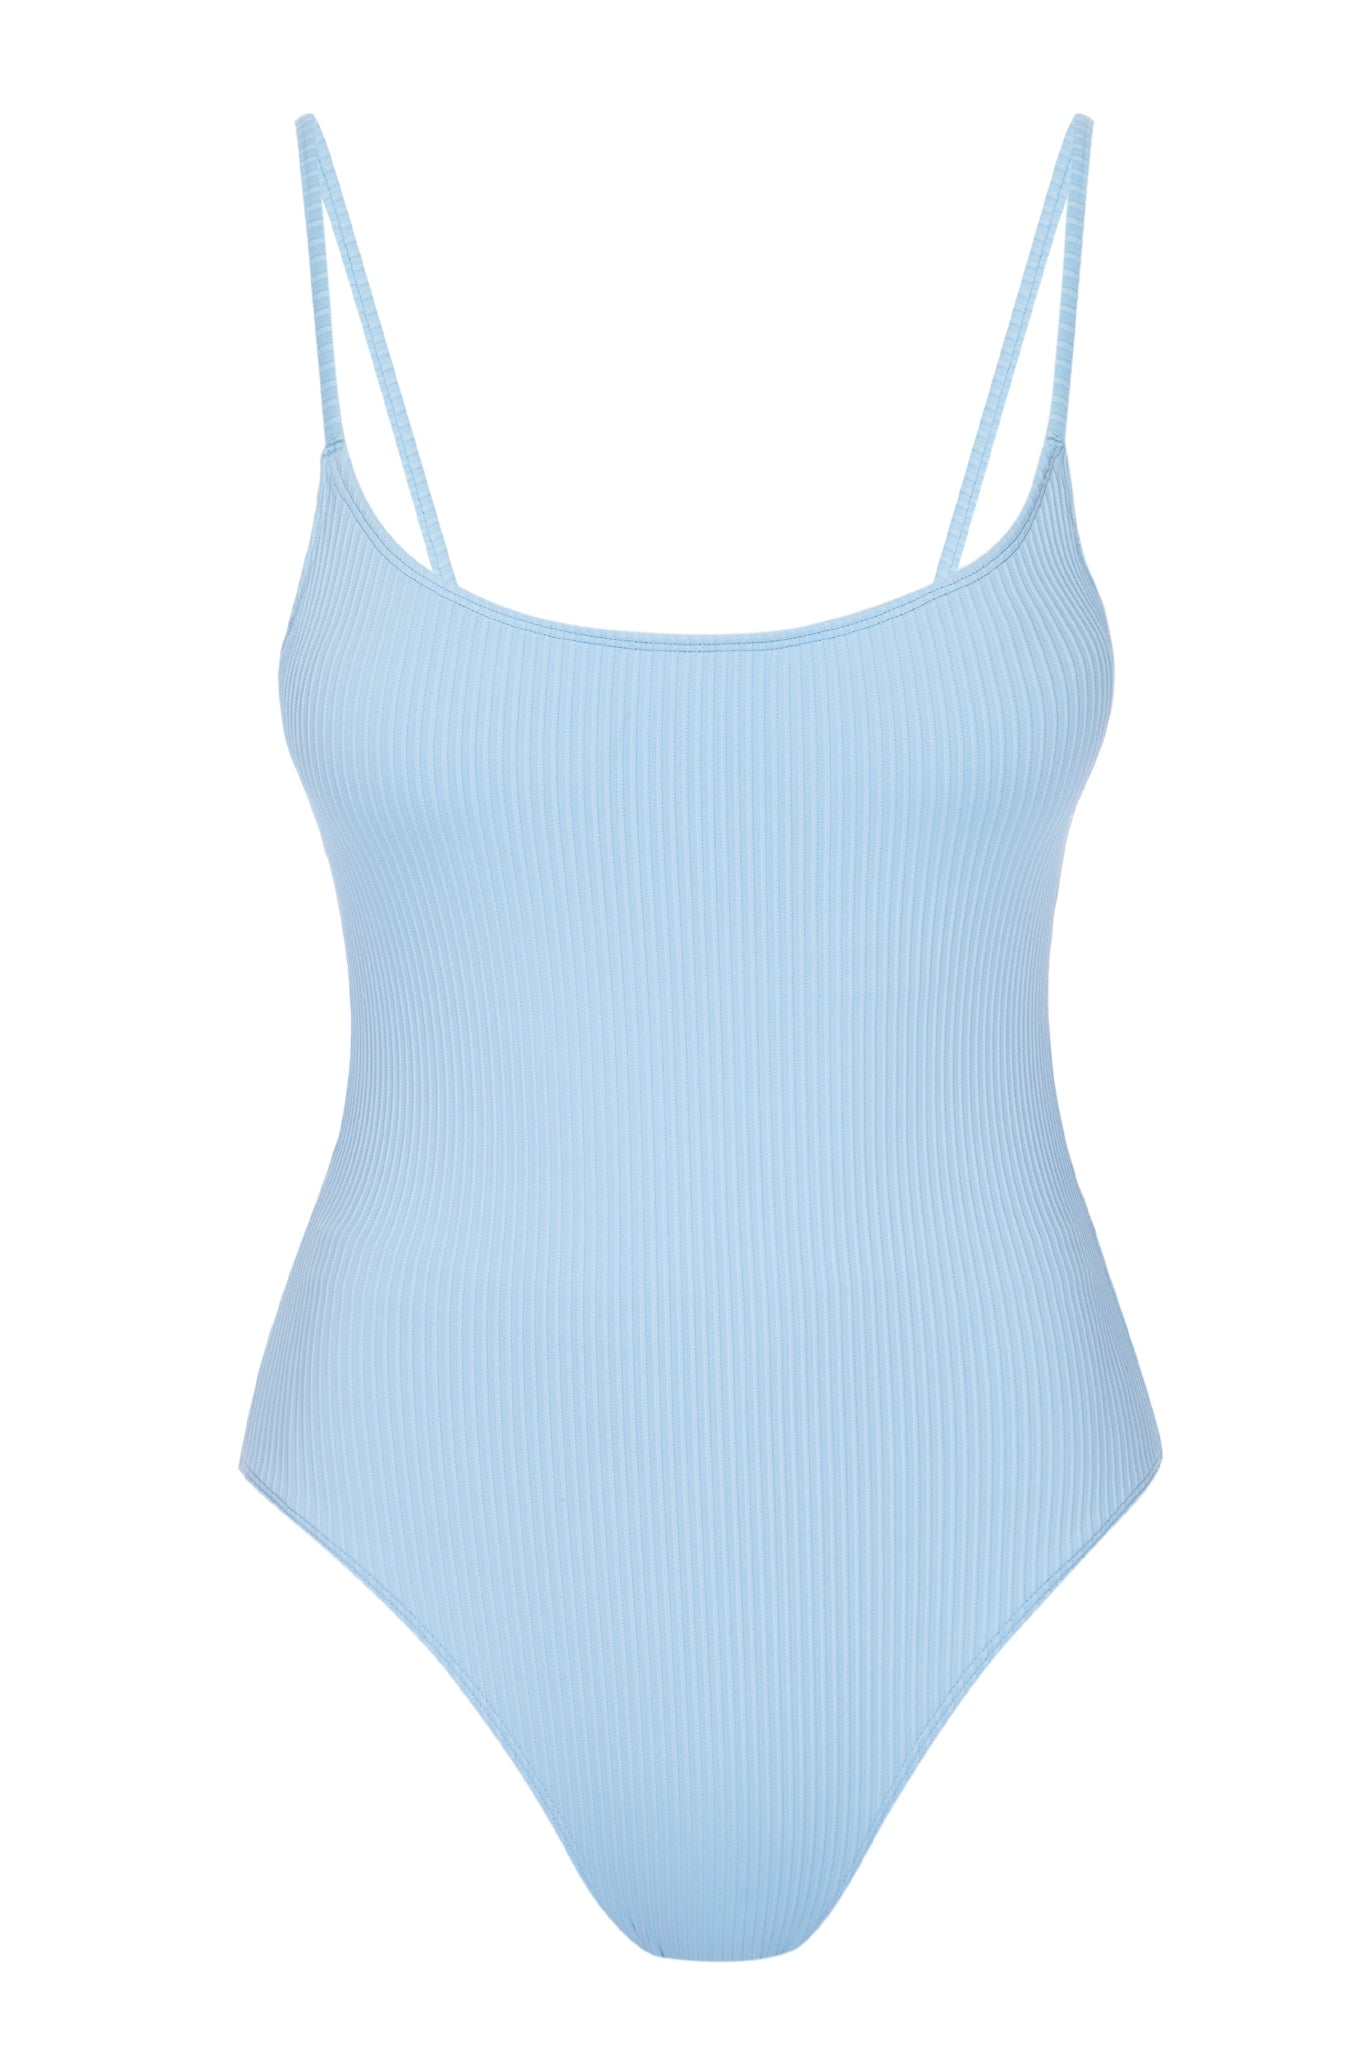 Load image into Gallery viewer, Bahamas One Piece Long Body - Sky Blue Rib